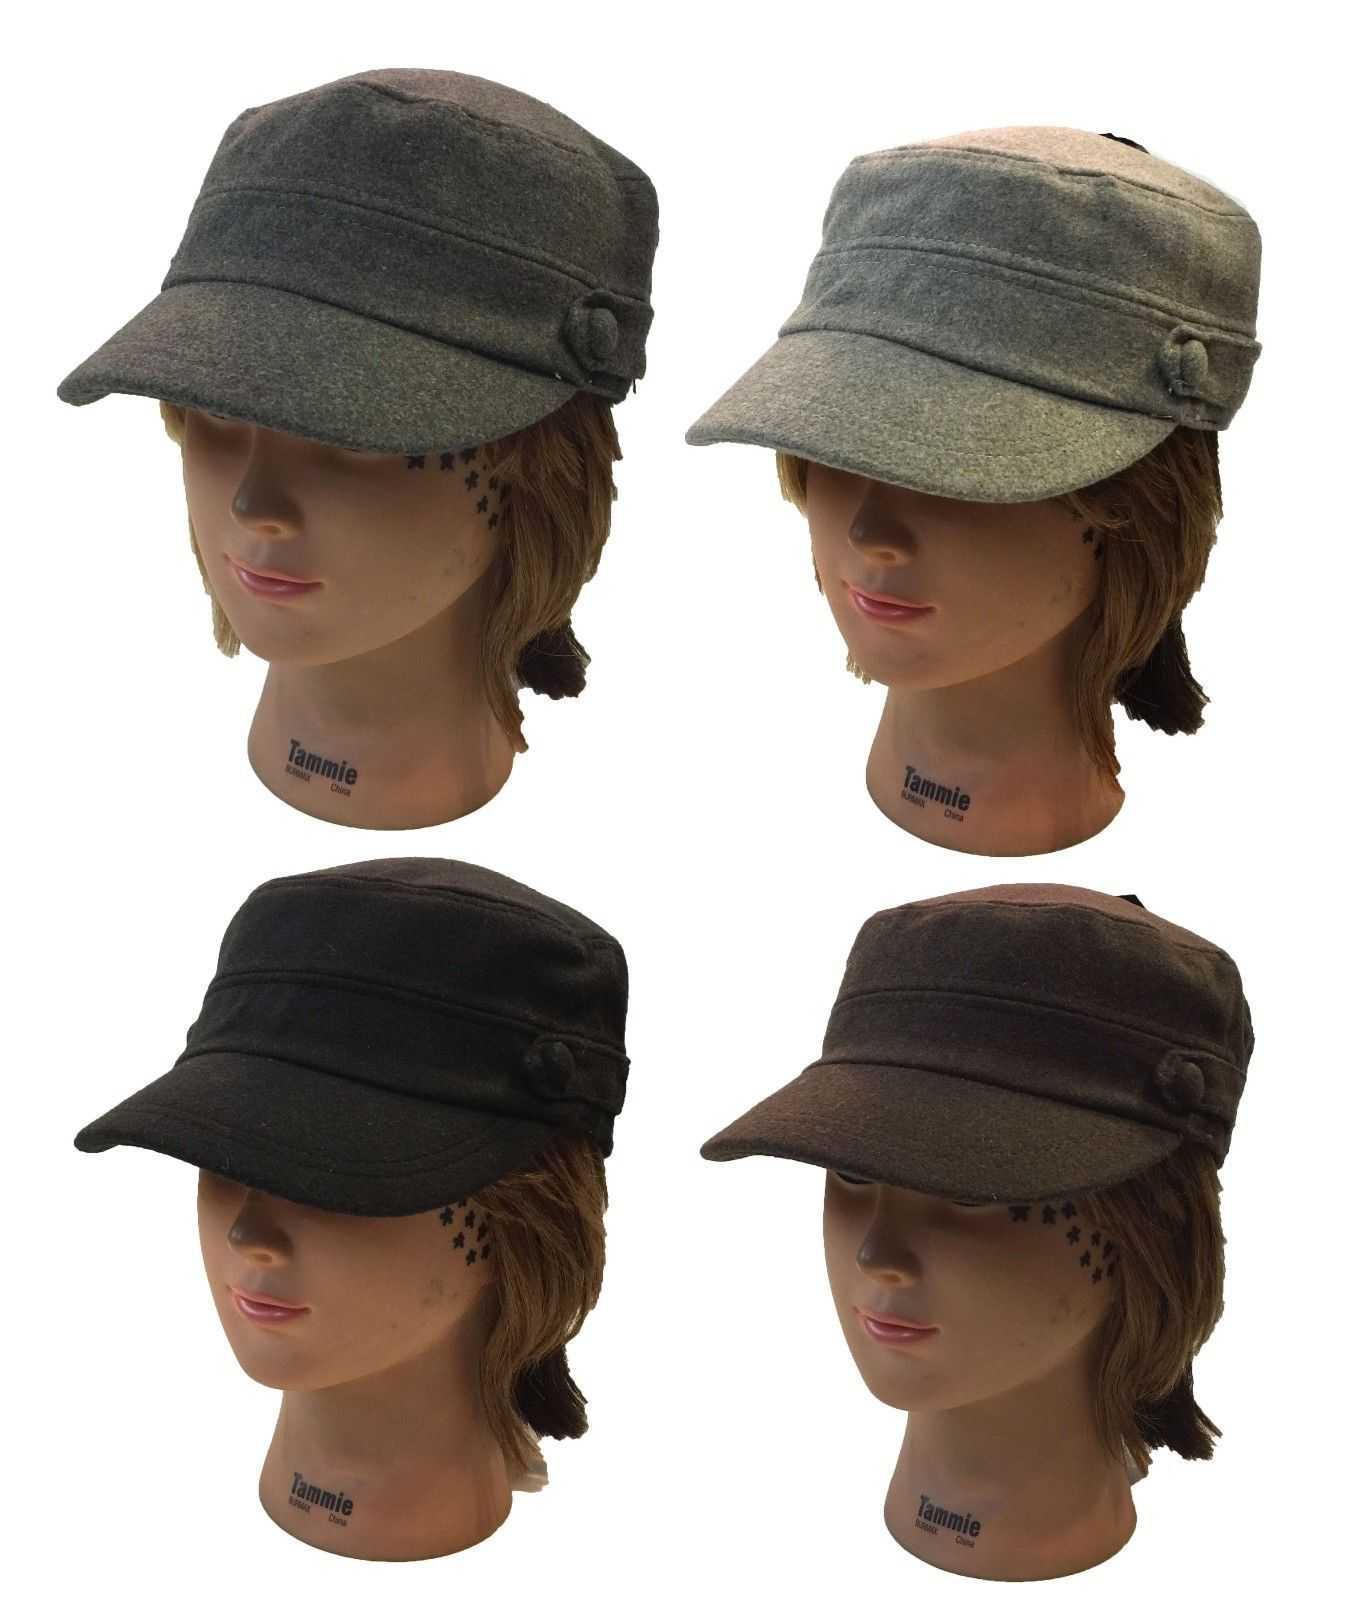 Ladies Men Cadet Box Cap Army Military Fashion Castro Wool Hat Cap ... e7f0986aa4